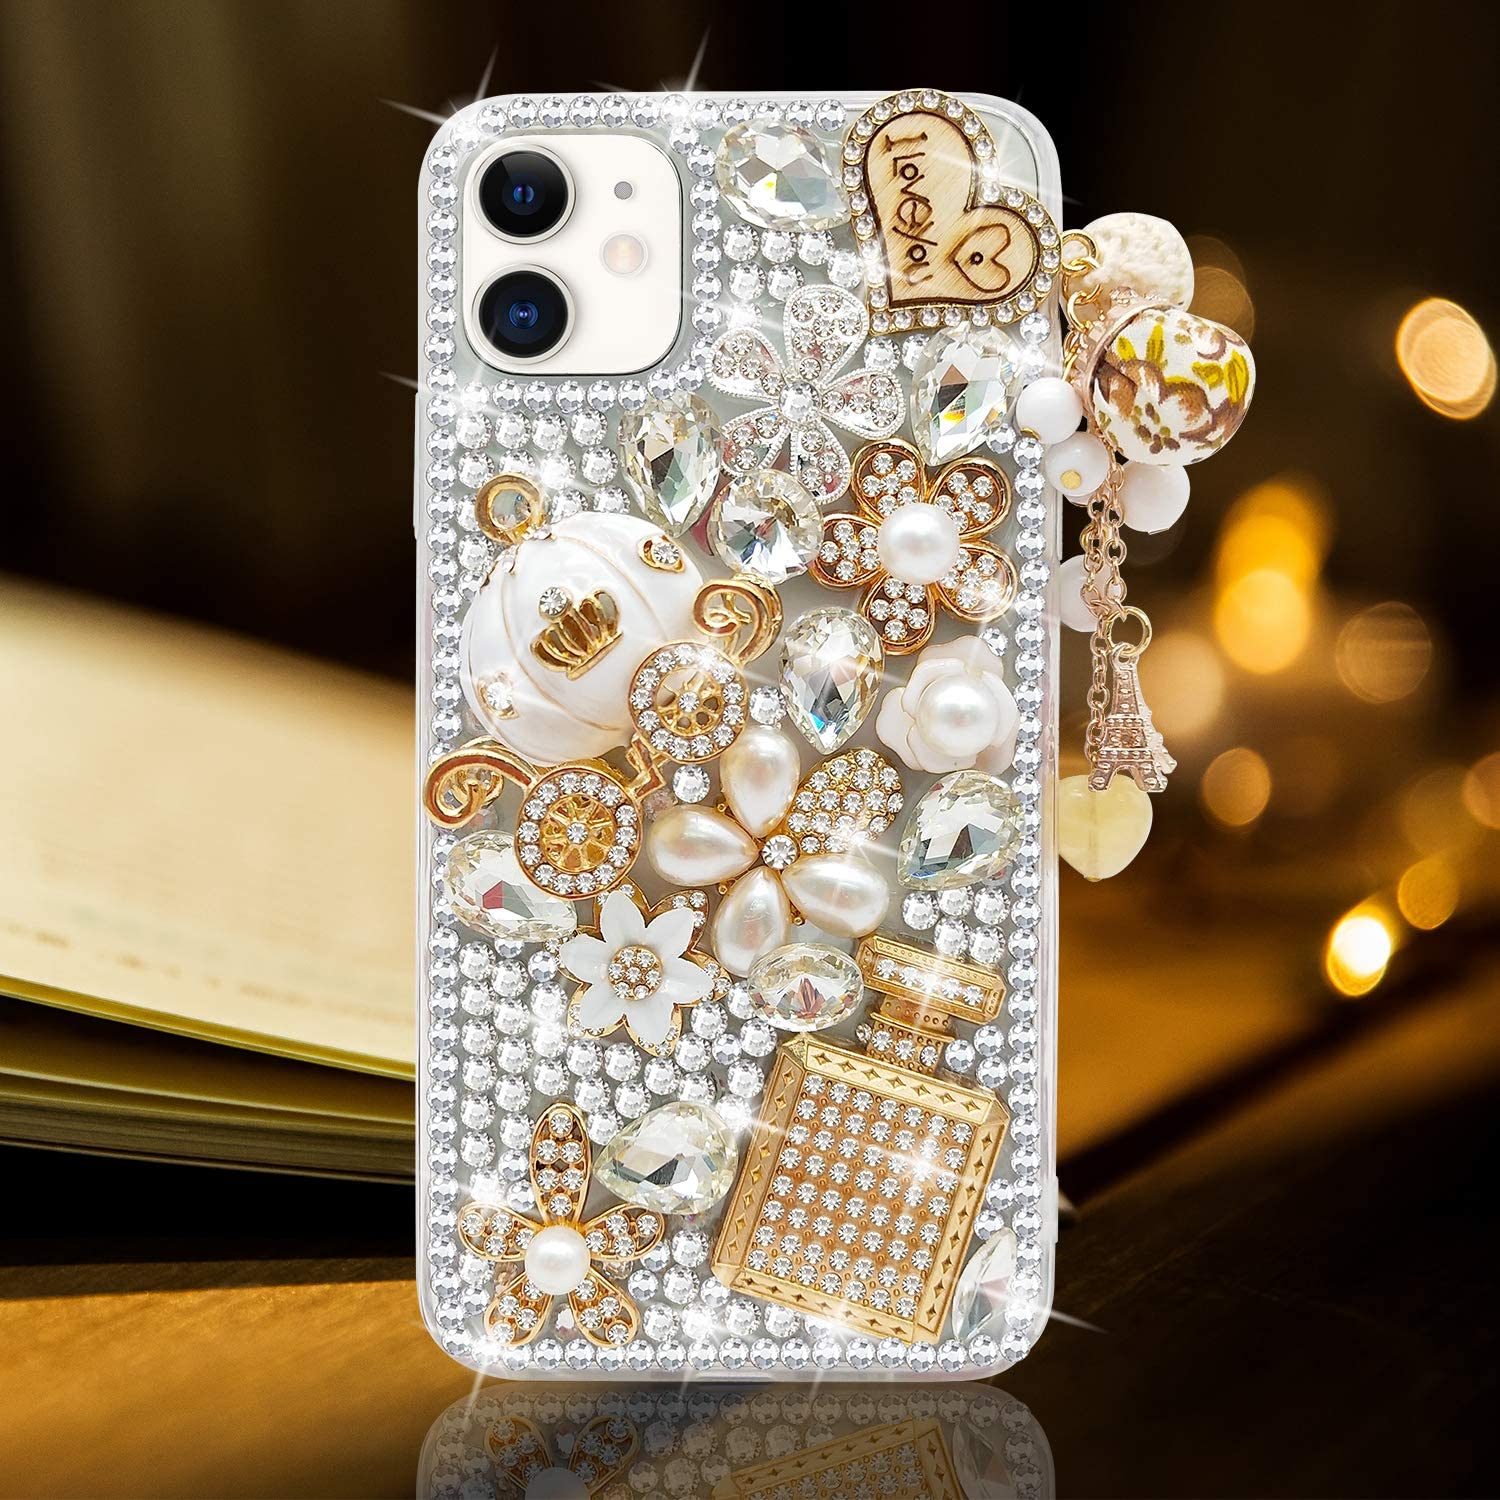 Guppy for iPhone 11 Case Women Luxury 3D Bling Shiny Rhinestone Diamond Crystal Pearl Handmade Pendant Iron Tower Pumpkin Car Flowers Soft Protective Anti-Fall Case for iPhone 11